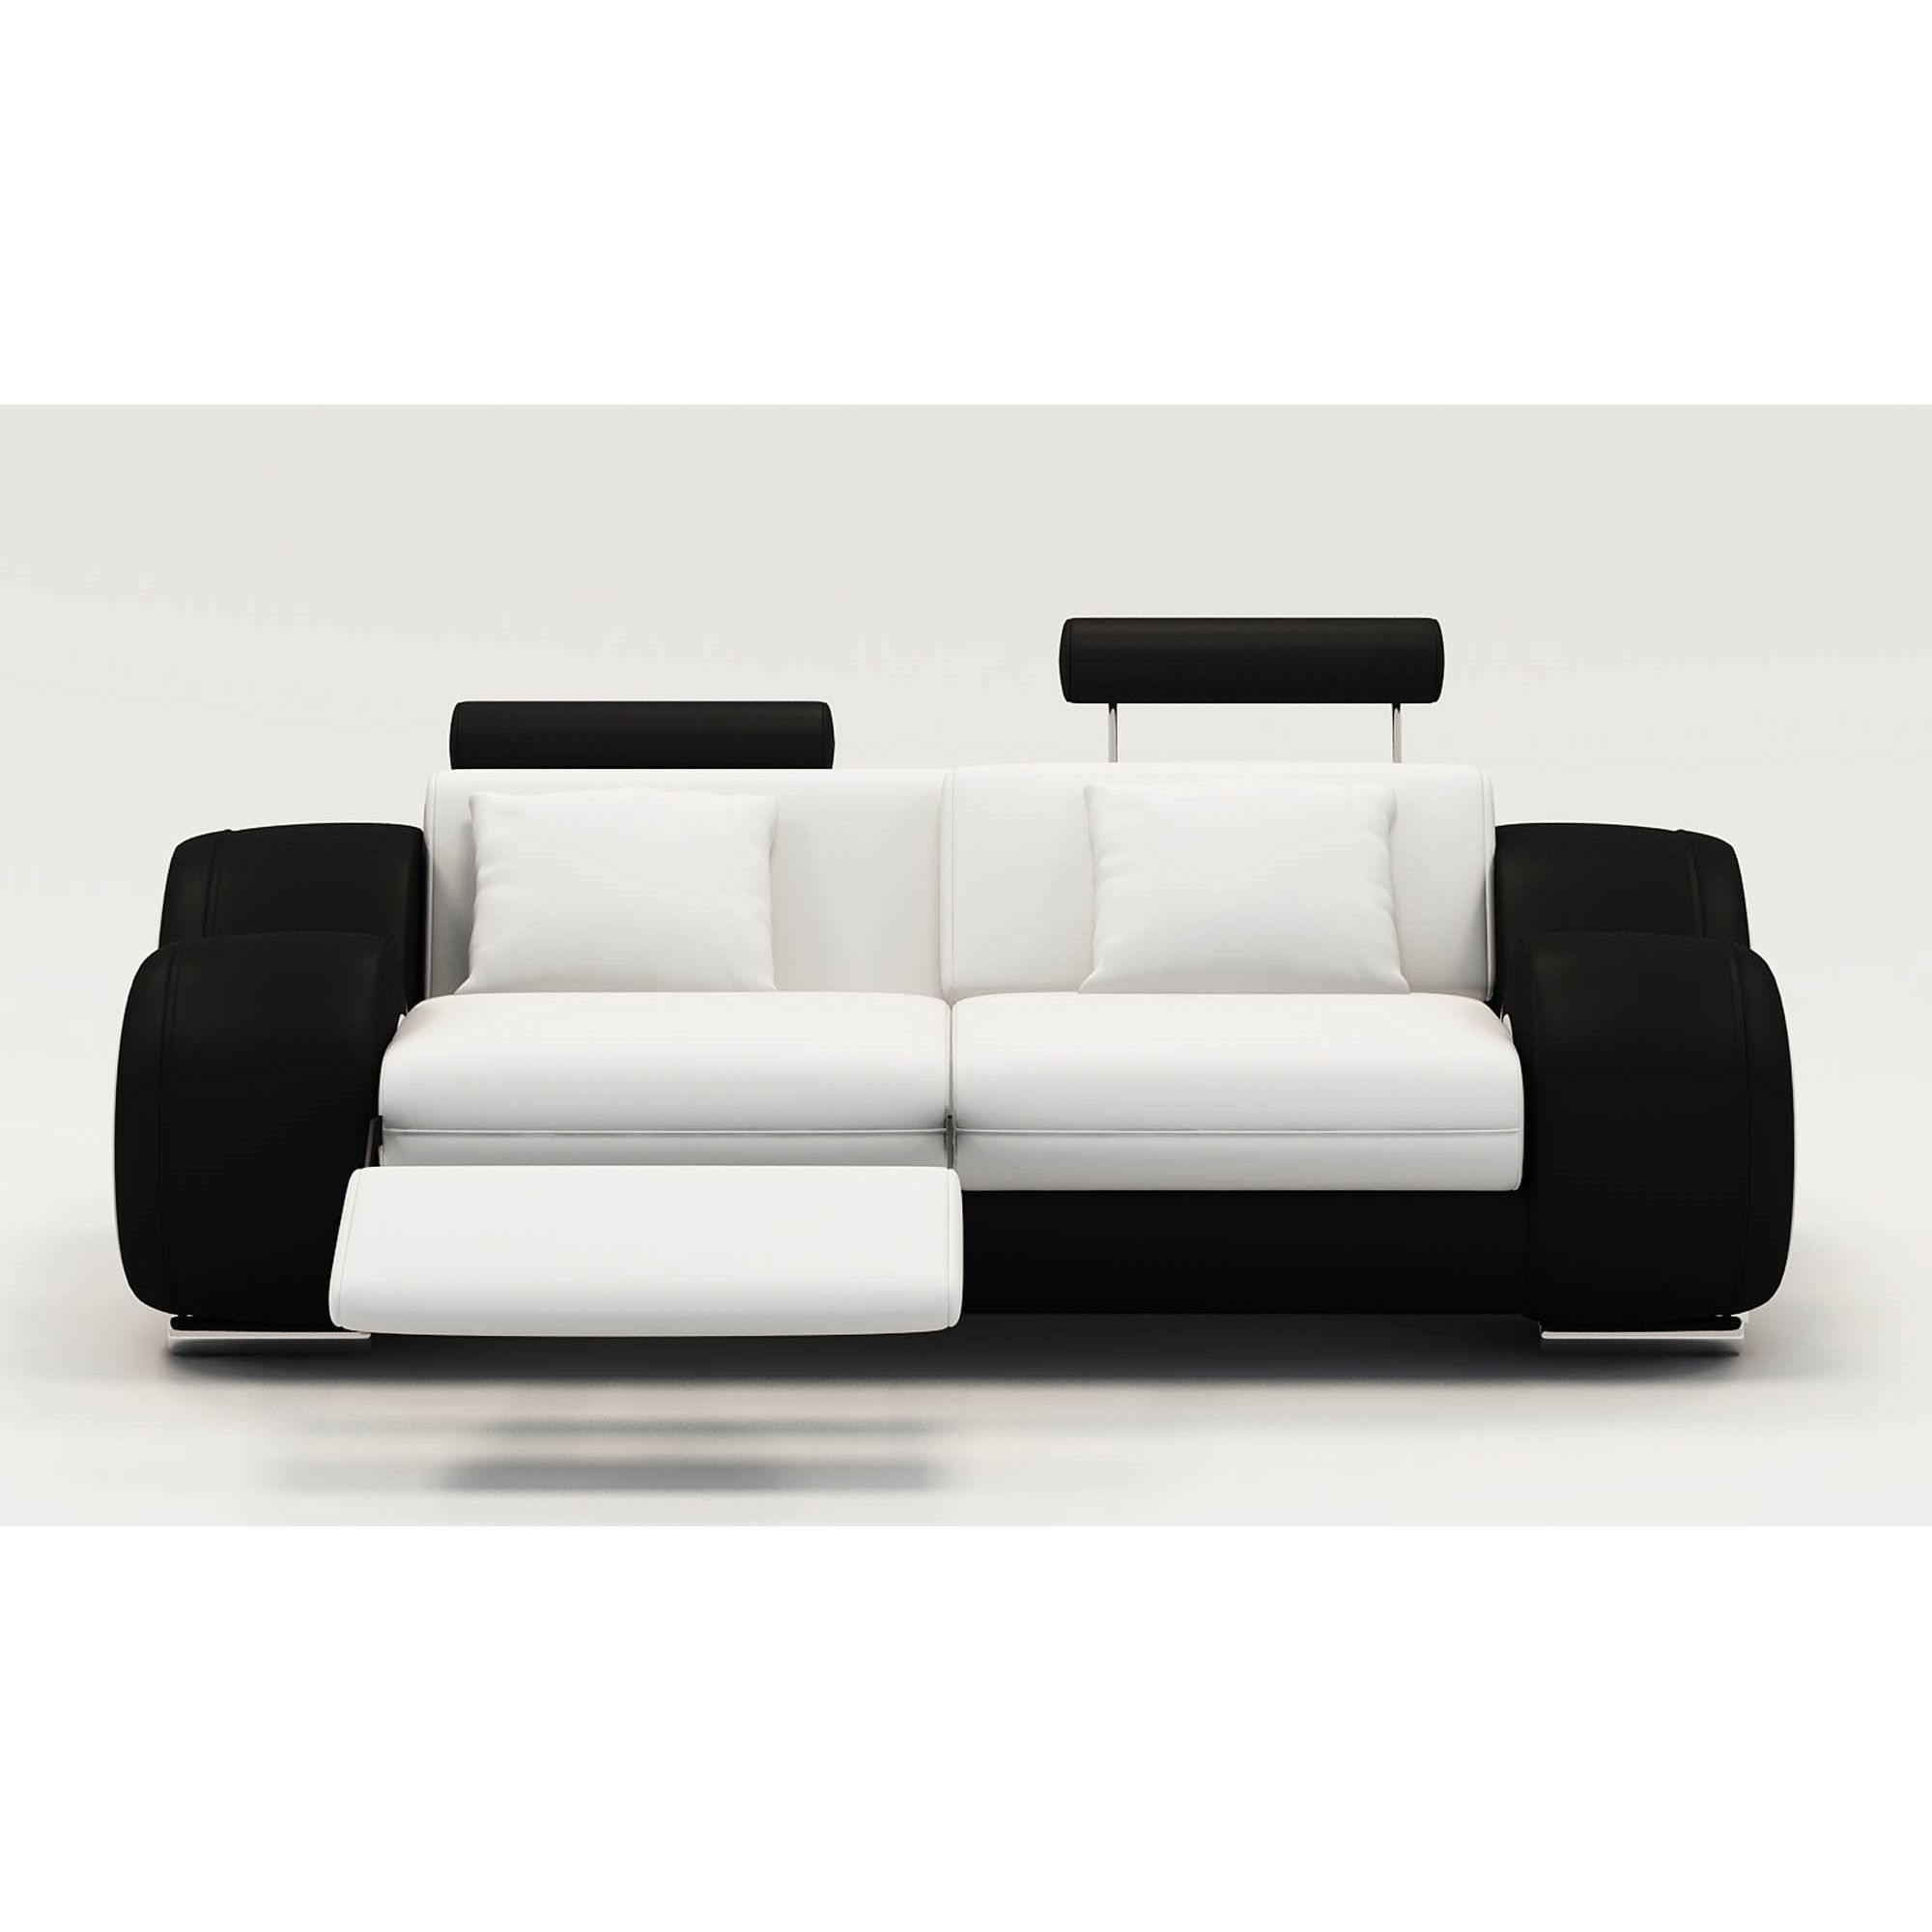 DECO IN PARIS Ensemble Canape Relax Design Places Blanc Et - Canapé relax design